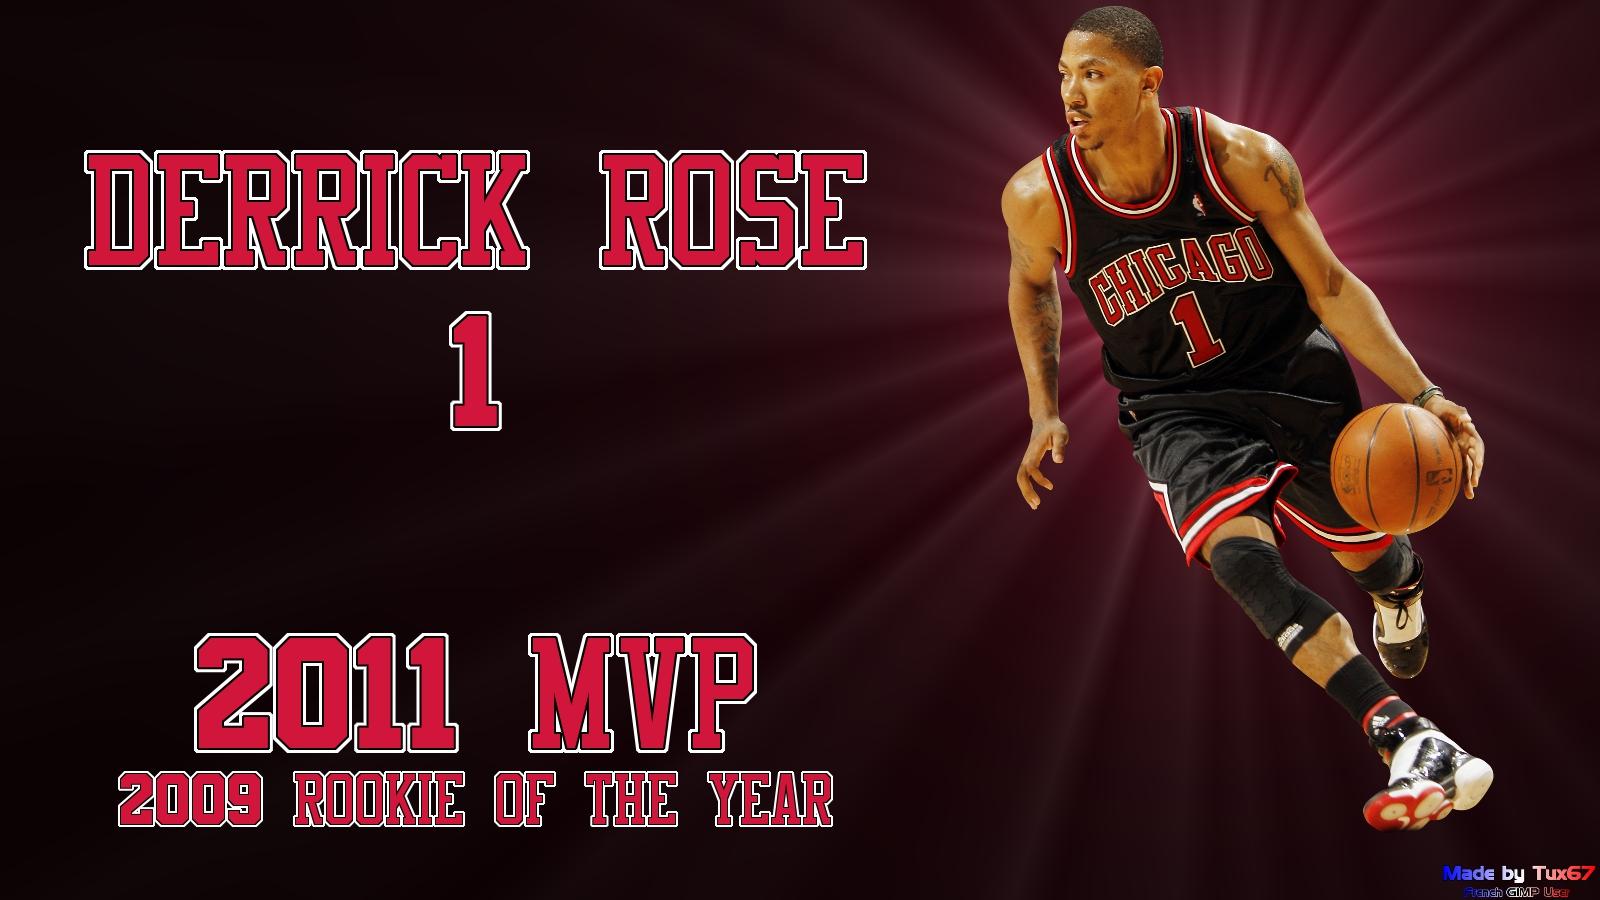 Derrick Rose My Sports Wallpapers 1600x900